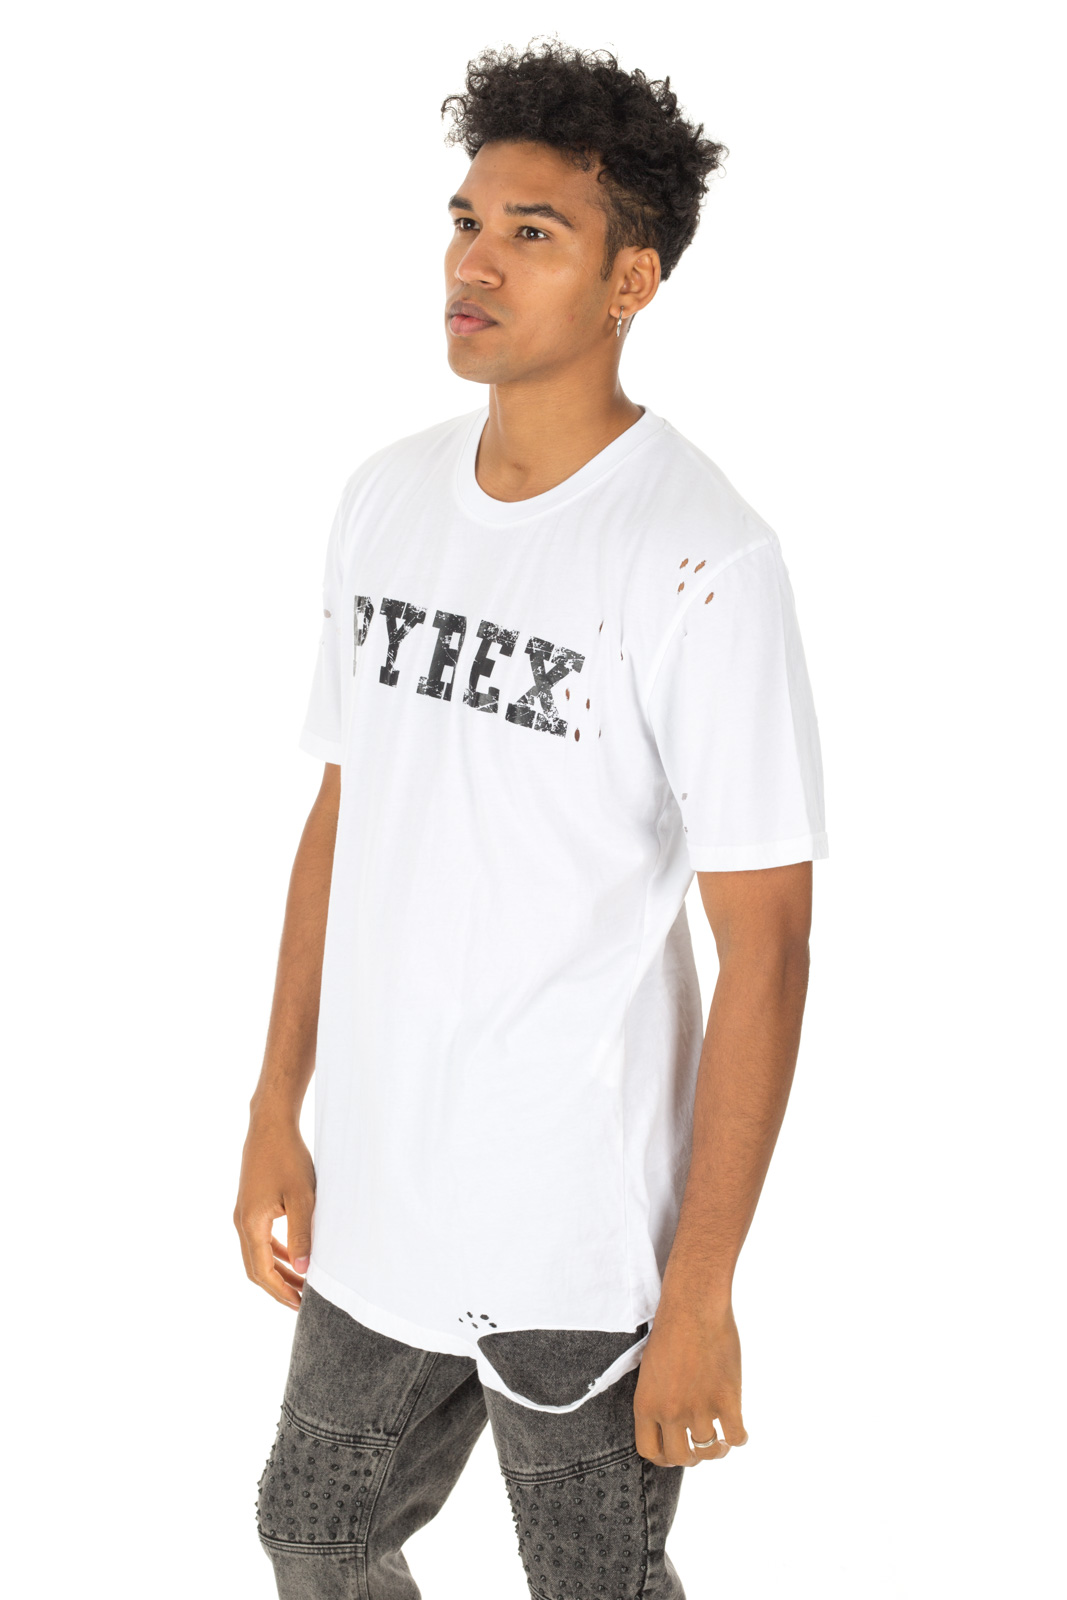 Pyrex - White T shirt with logo and tears